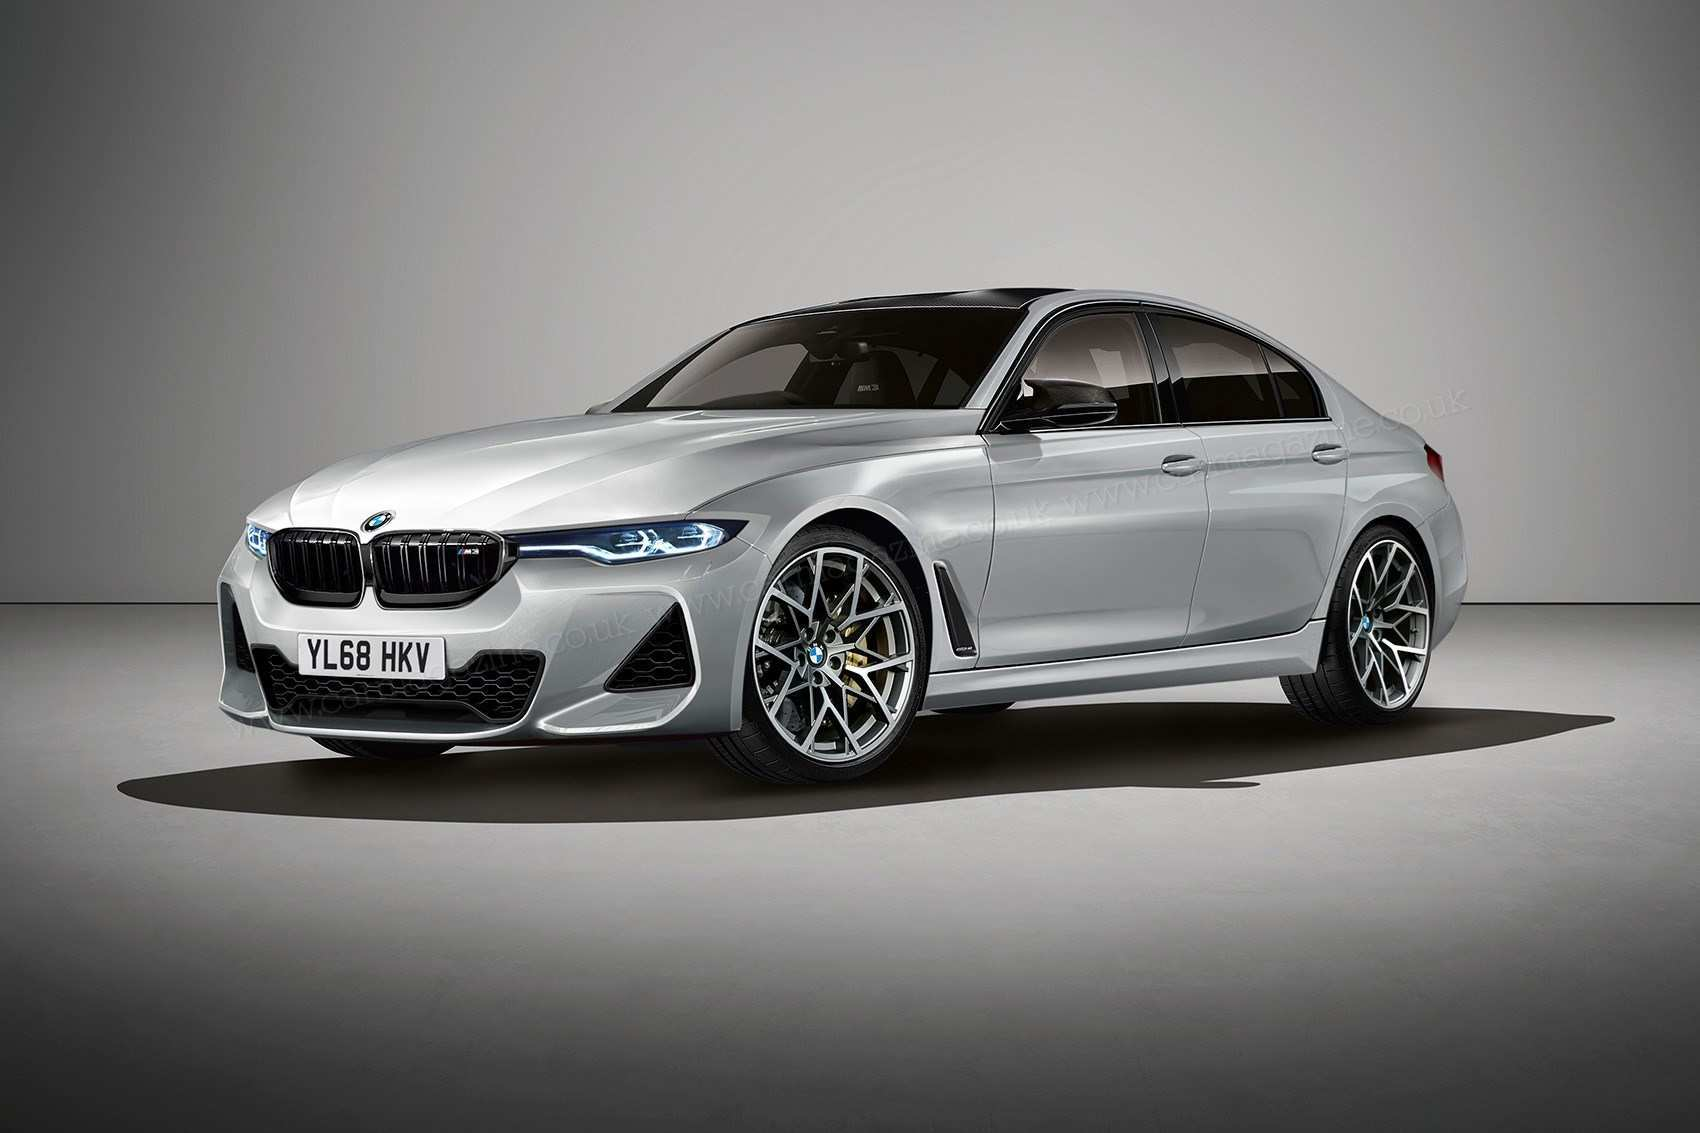 22 Great Bmw Of 2020 Model by Bmw Of 2020